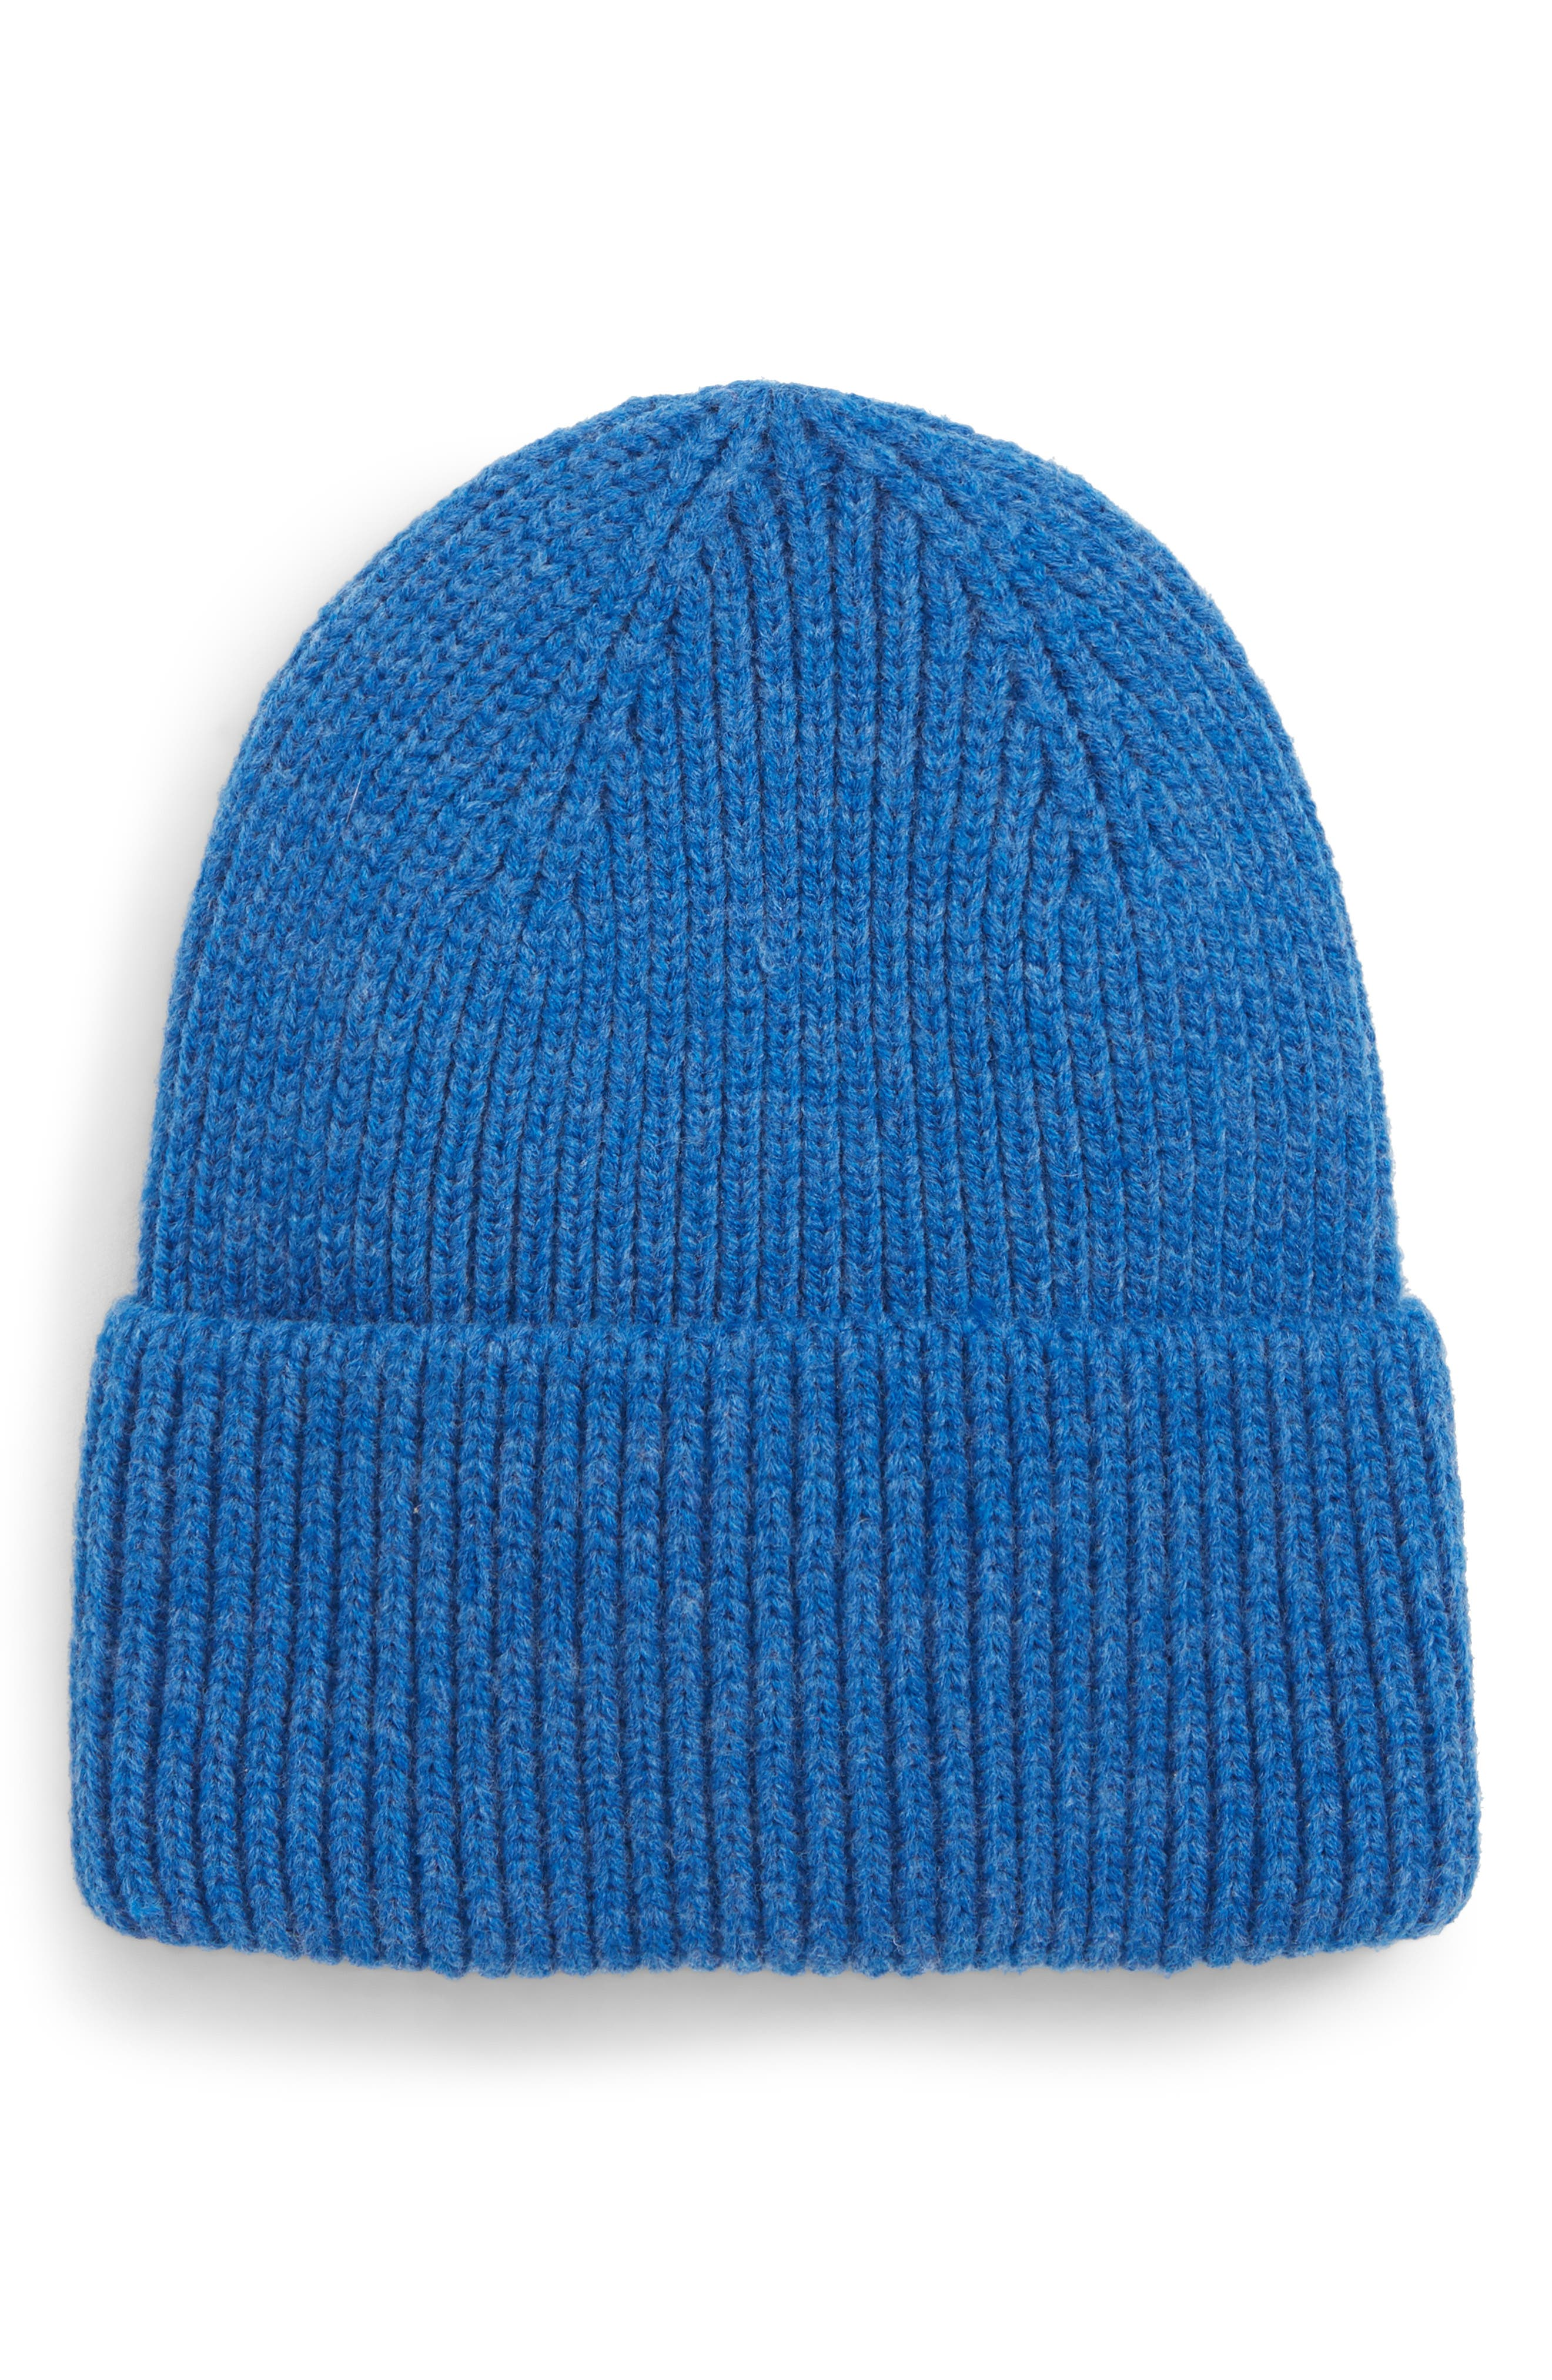 Cuff Beanie,                         Main,                         color, BLUE CAMP